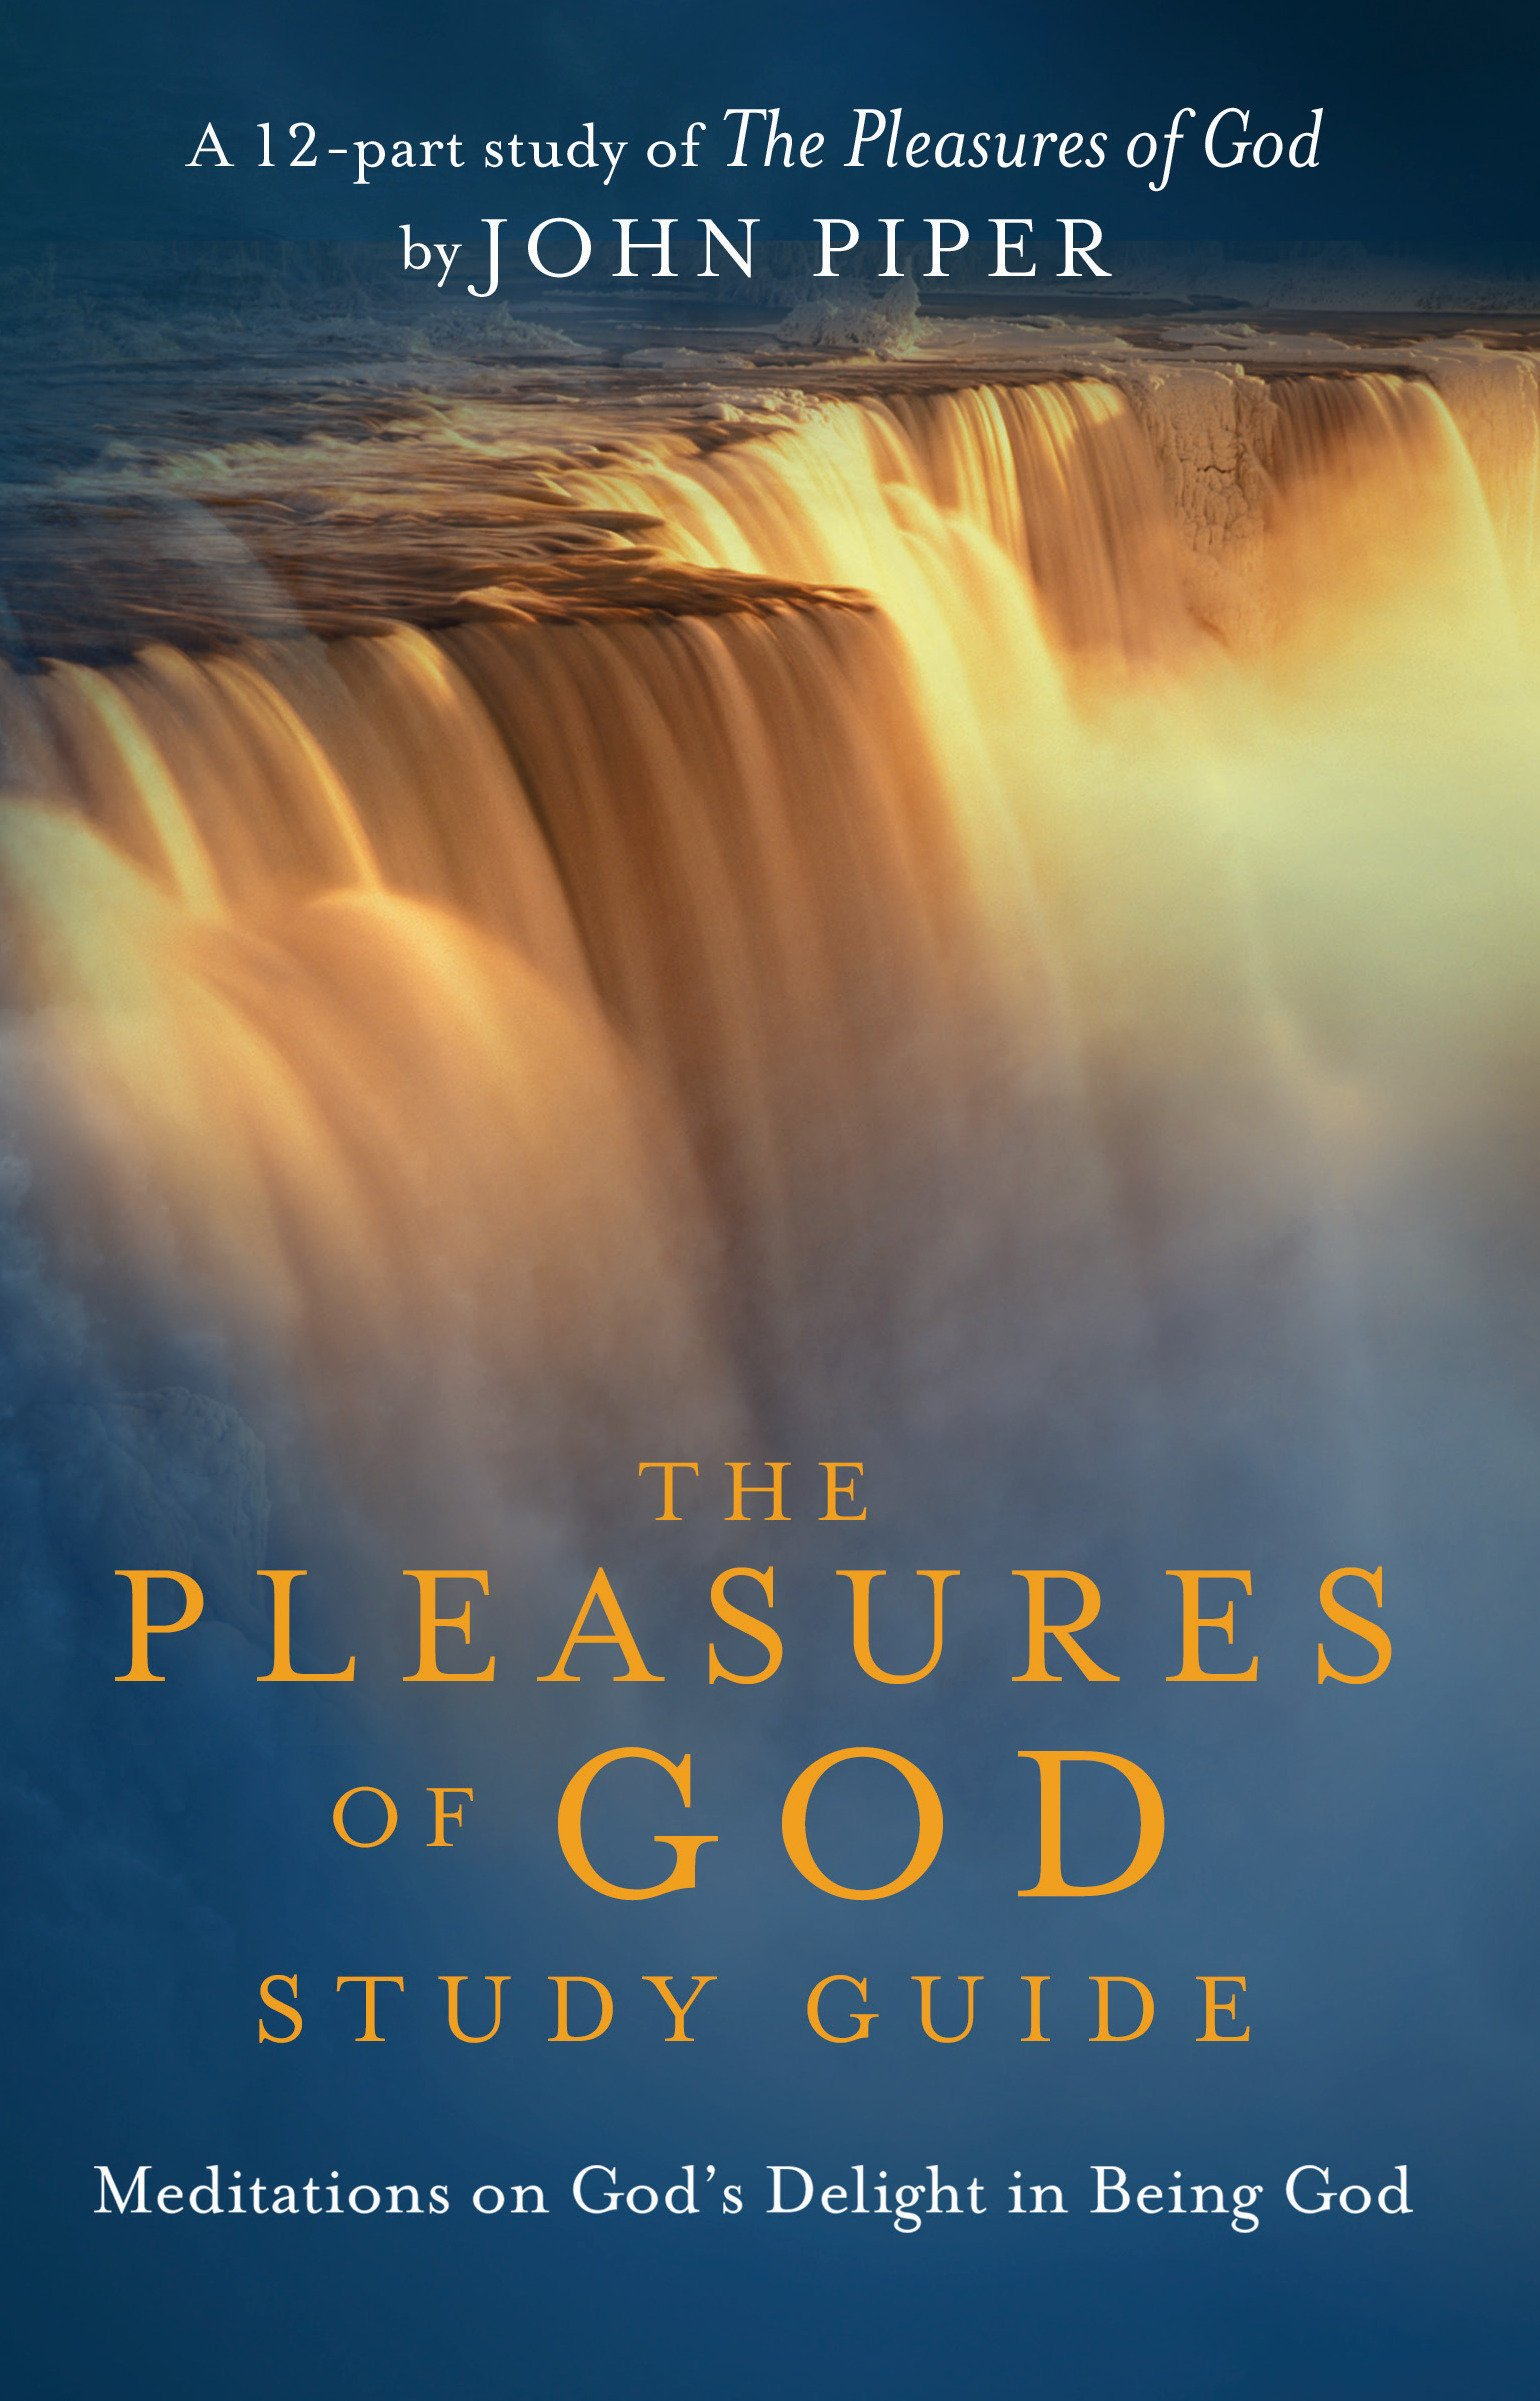 The Pleasures of God Study Guide: Meditations on God's Delight in Being God:  Desiring God: 9781601422903: Amazon.com: Books